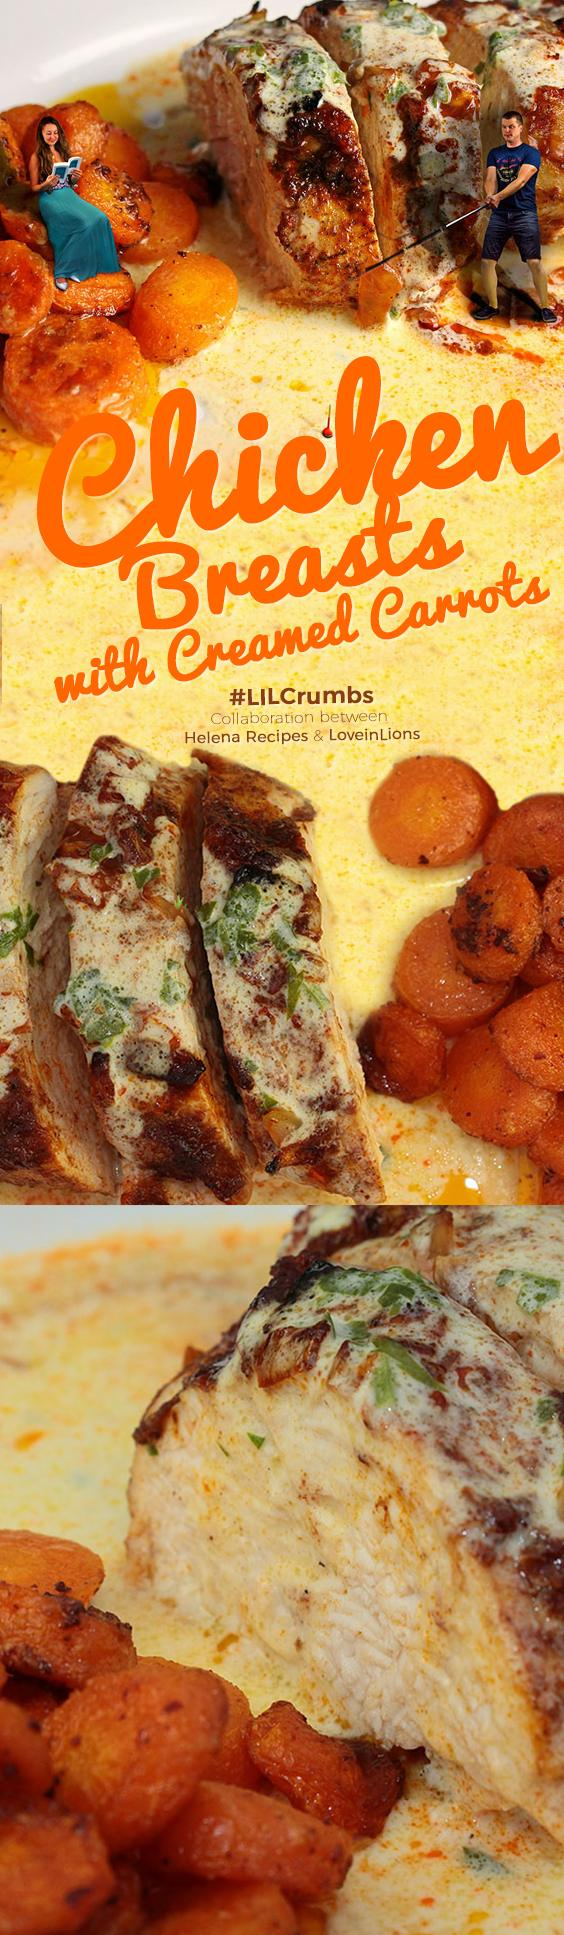 Chicken-Breasts-Creamed-Carrots-Pinterest-Image